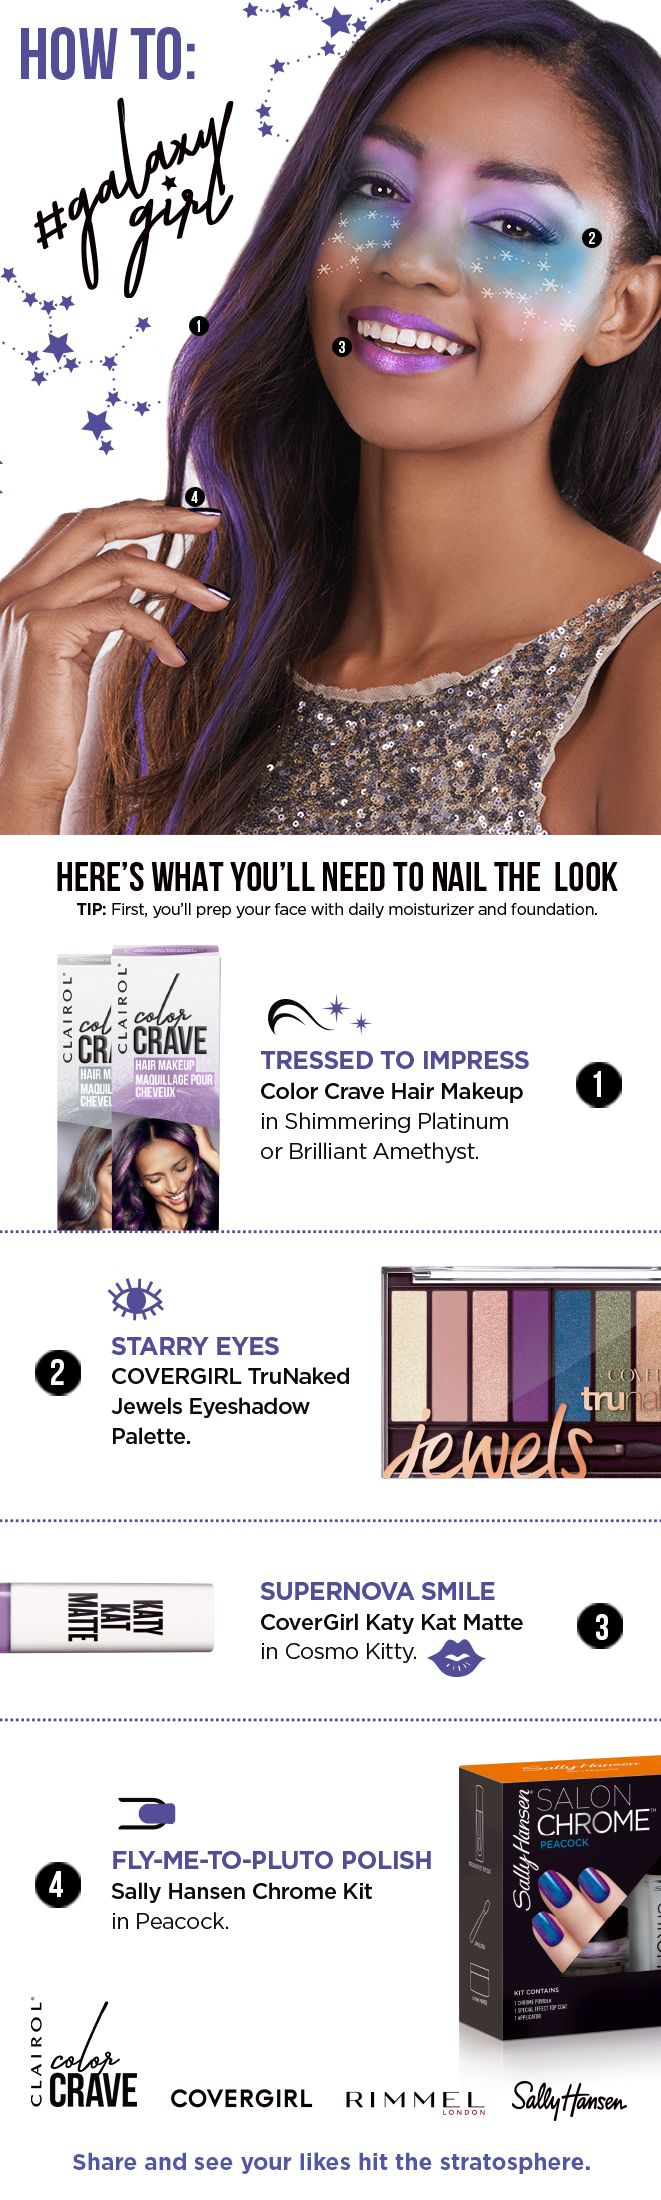 Make Halloween out of this world with this DIY Galaxy Girl look: Apply Clairol Color Crave Hair Makeup in Amethyst or Platinum. Right now Color Crave is buy one, get one 25% off at Target. Create starry eyes with the COVERGIRL TruNaked Jewels Eyeshadow Palette. Blend Amethyst, Sapphire & Green Amber moving outward. Add Pearl at inner corners of eyes and cheekbones.    Add a supernova smile with COVERGIRL Katy Kat Matte in Cosmo Kitty.    Finish with Sally Hansen Chrome Kit in Peacock.